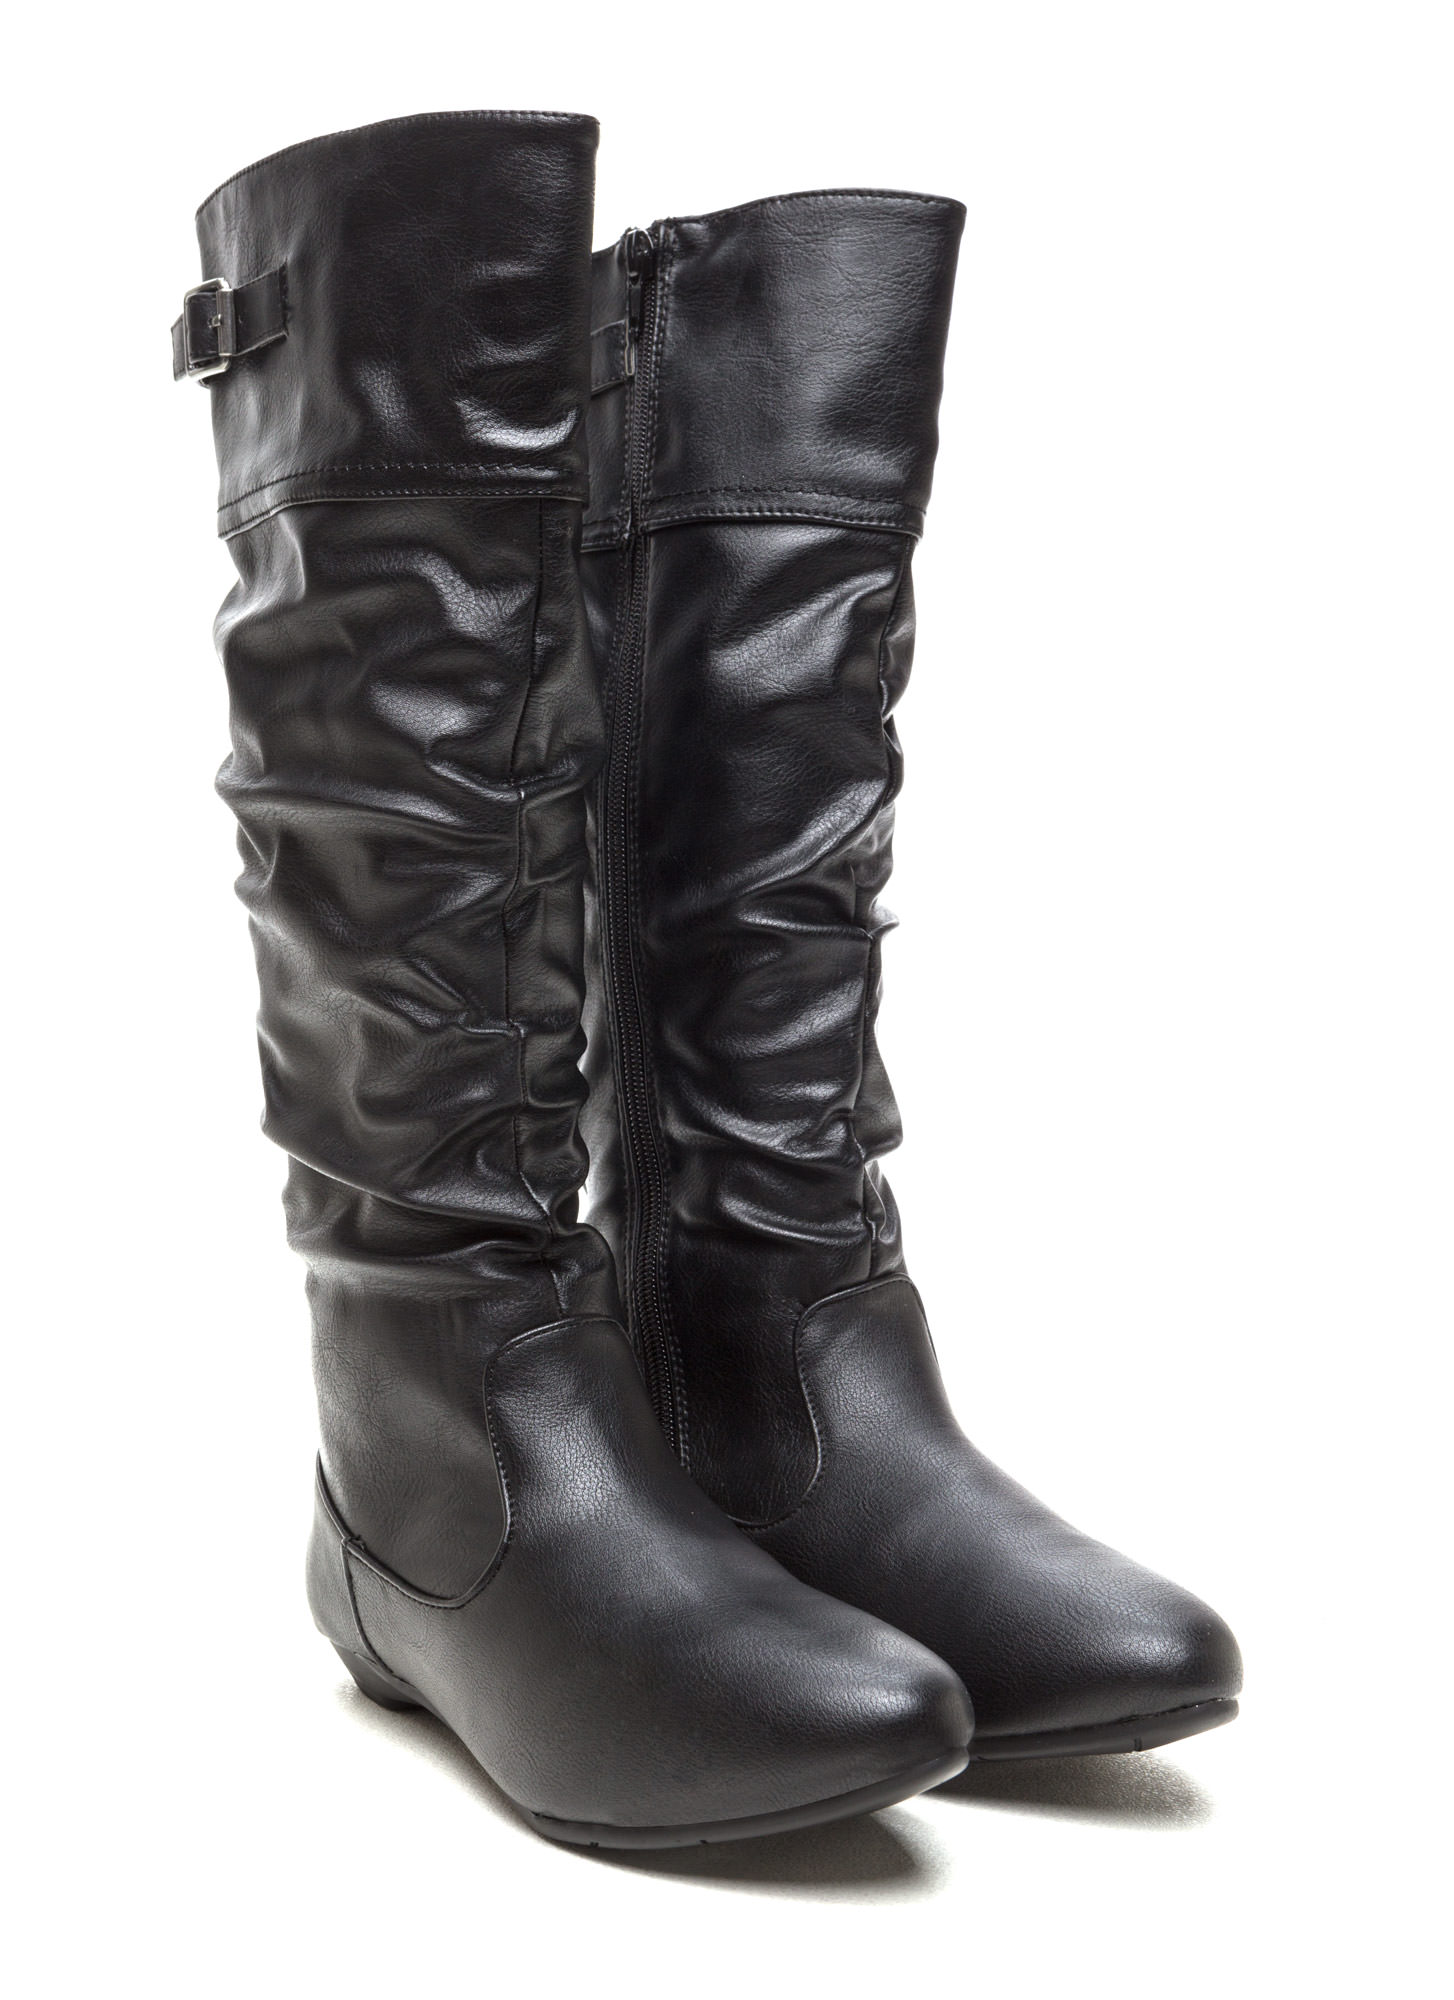 Strap 'Em Up Slouchy Knee-High Boots BLACK